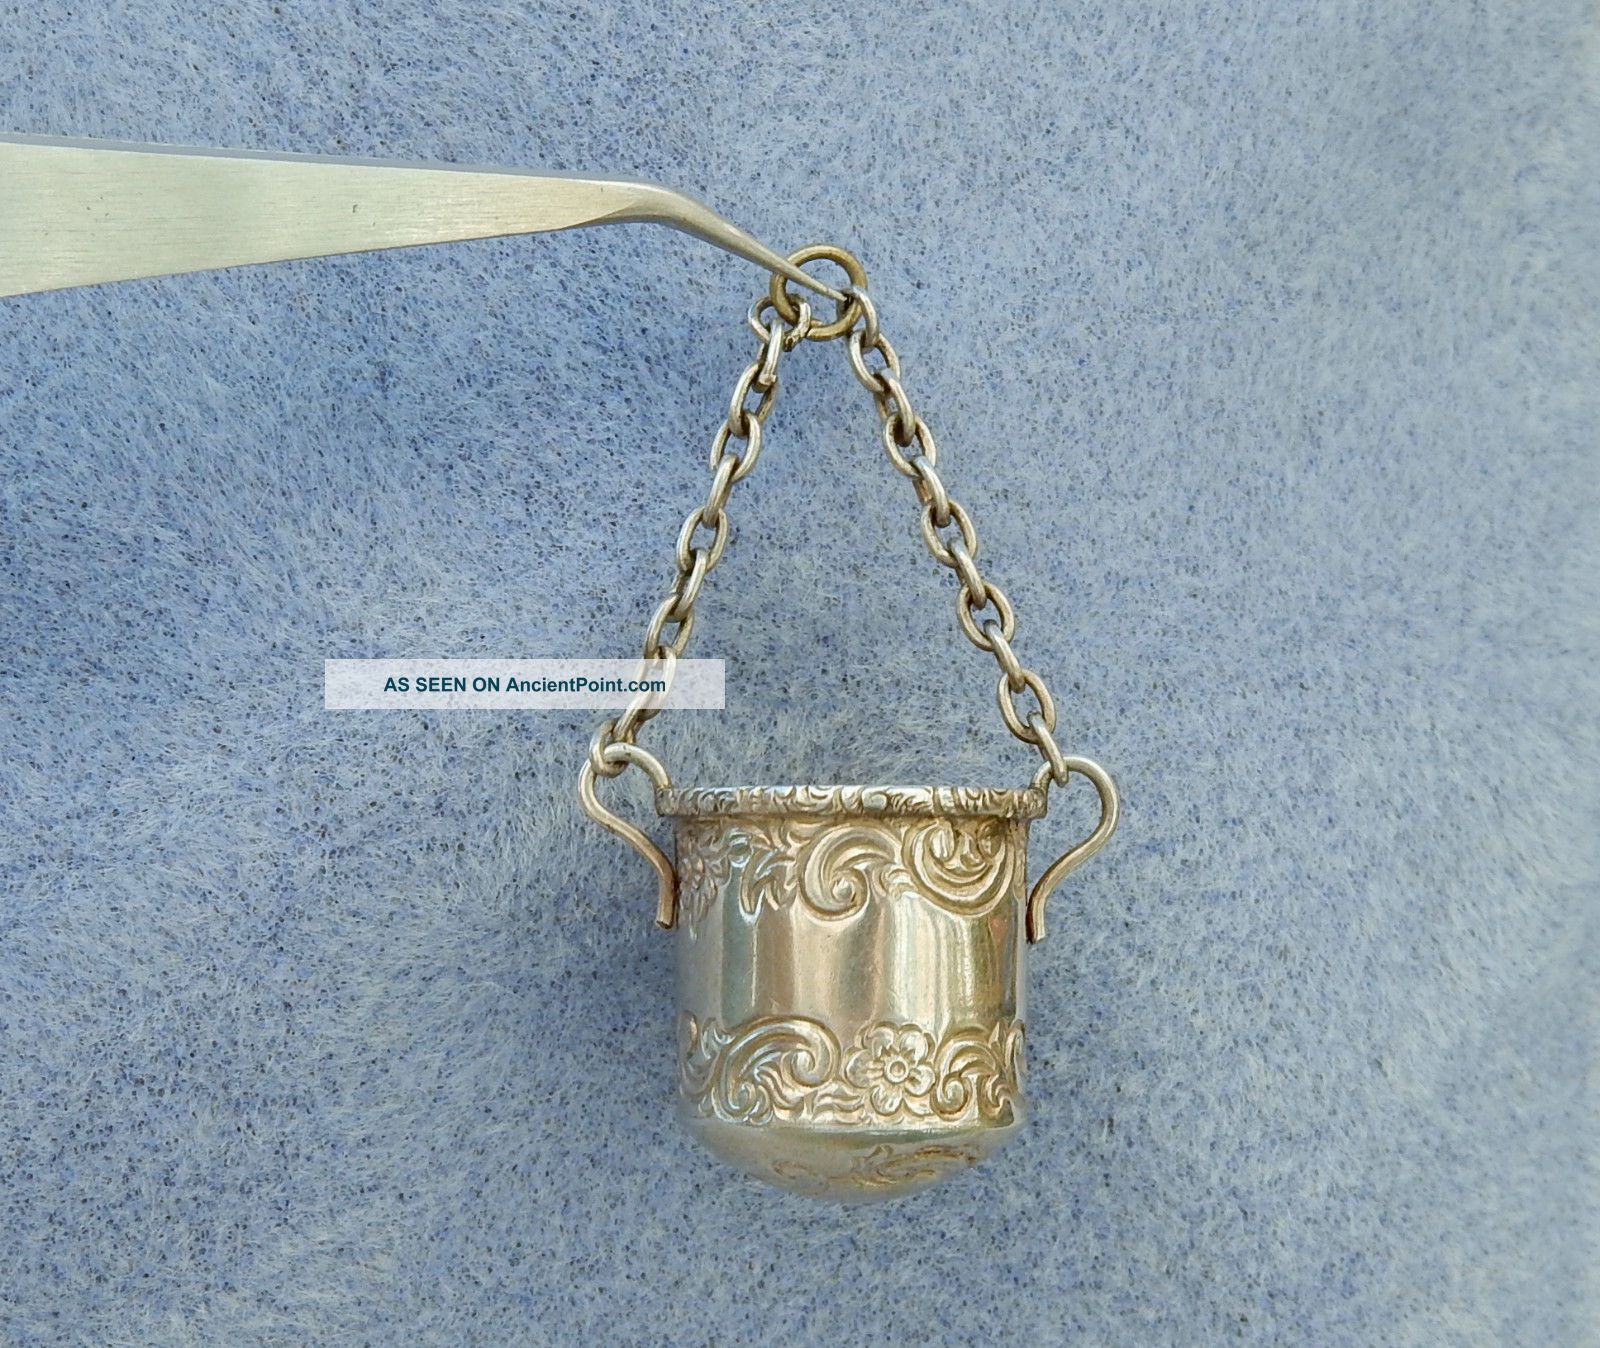 Antique Victorian Sterling Silver Chatelaine Thimble Bucket Holder Hm 1893 Tools, Scissors & Measures photo